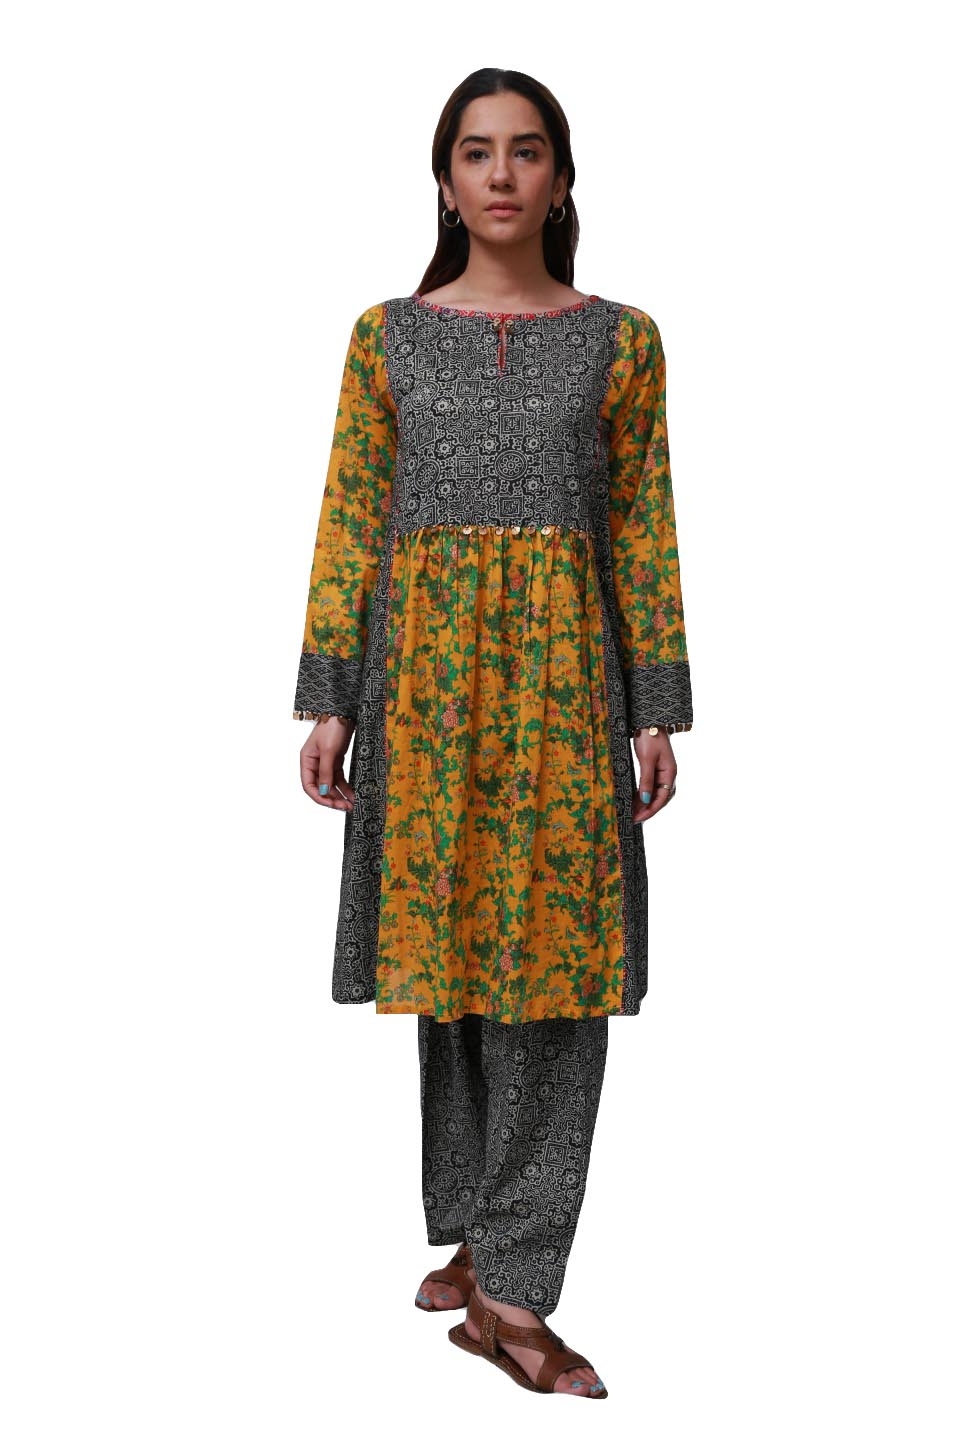 Generation - Yellow Asiatic Panelled Frock